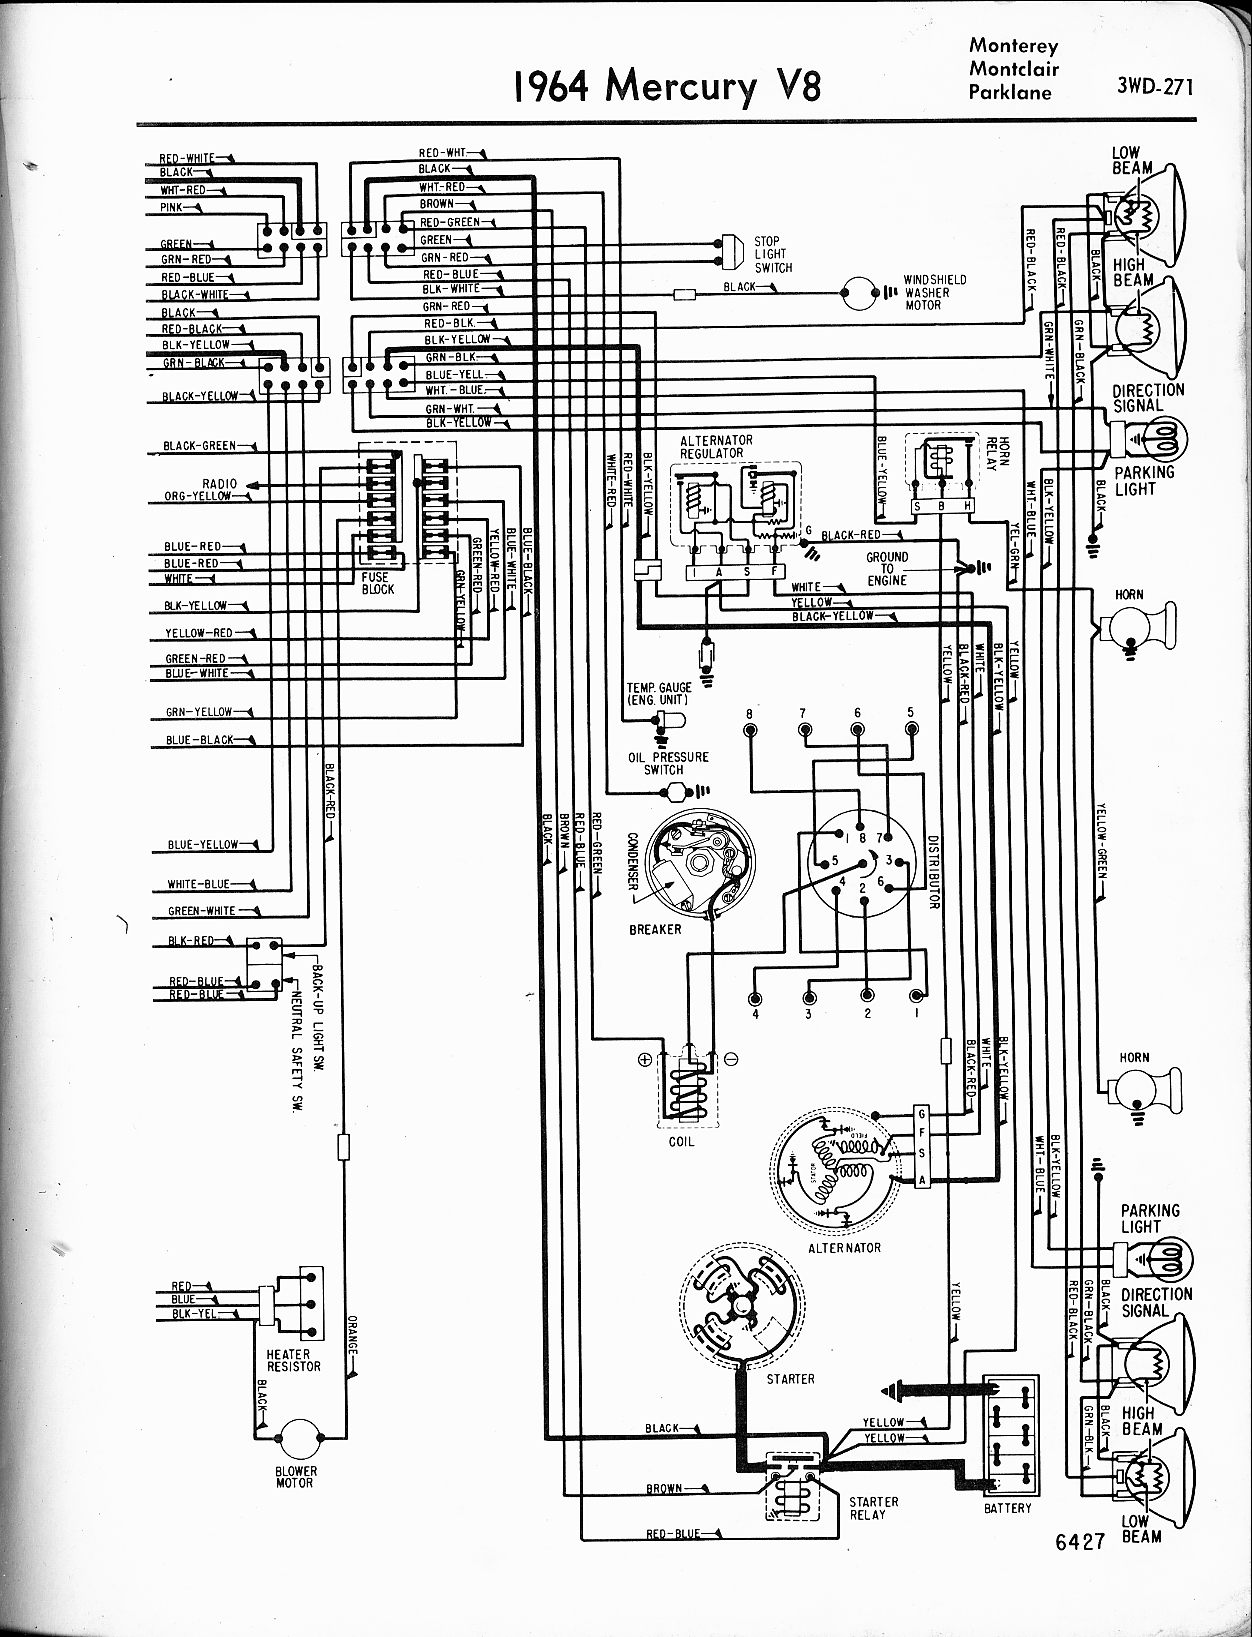 MWire5765 271 64 falcon wiring diagram 64 comet ignition wiring \u2022 wiring 1965 ford falcon wiring diagram at aneh.co